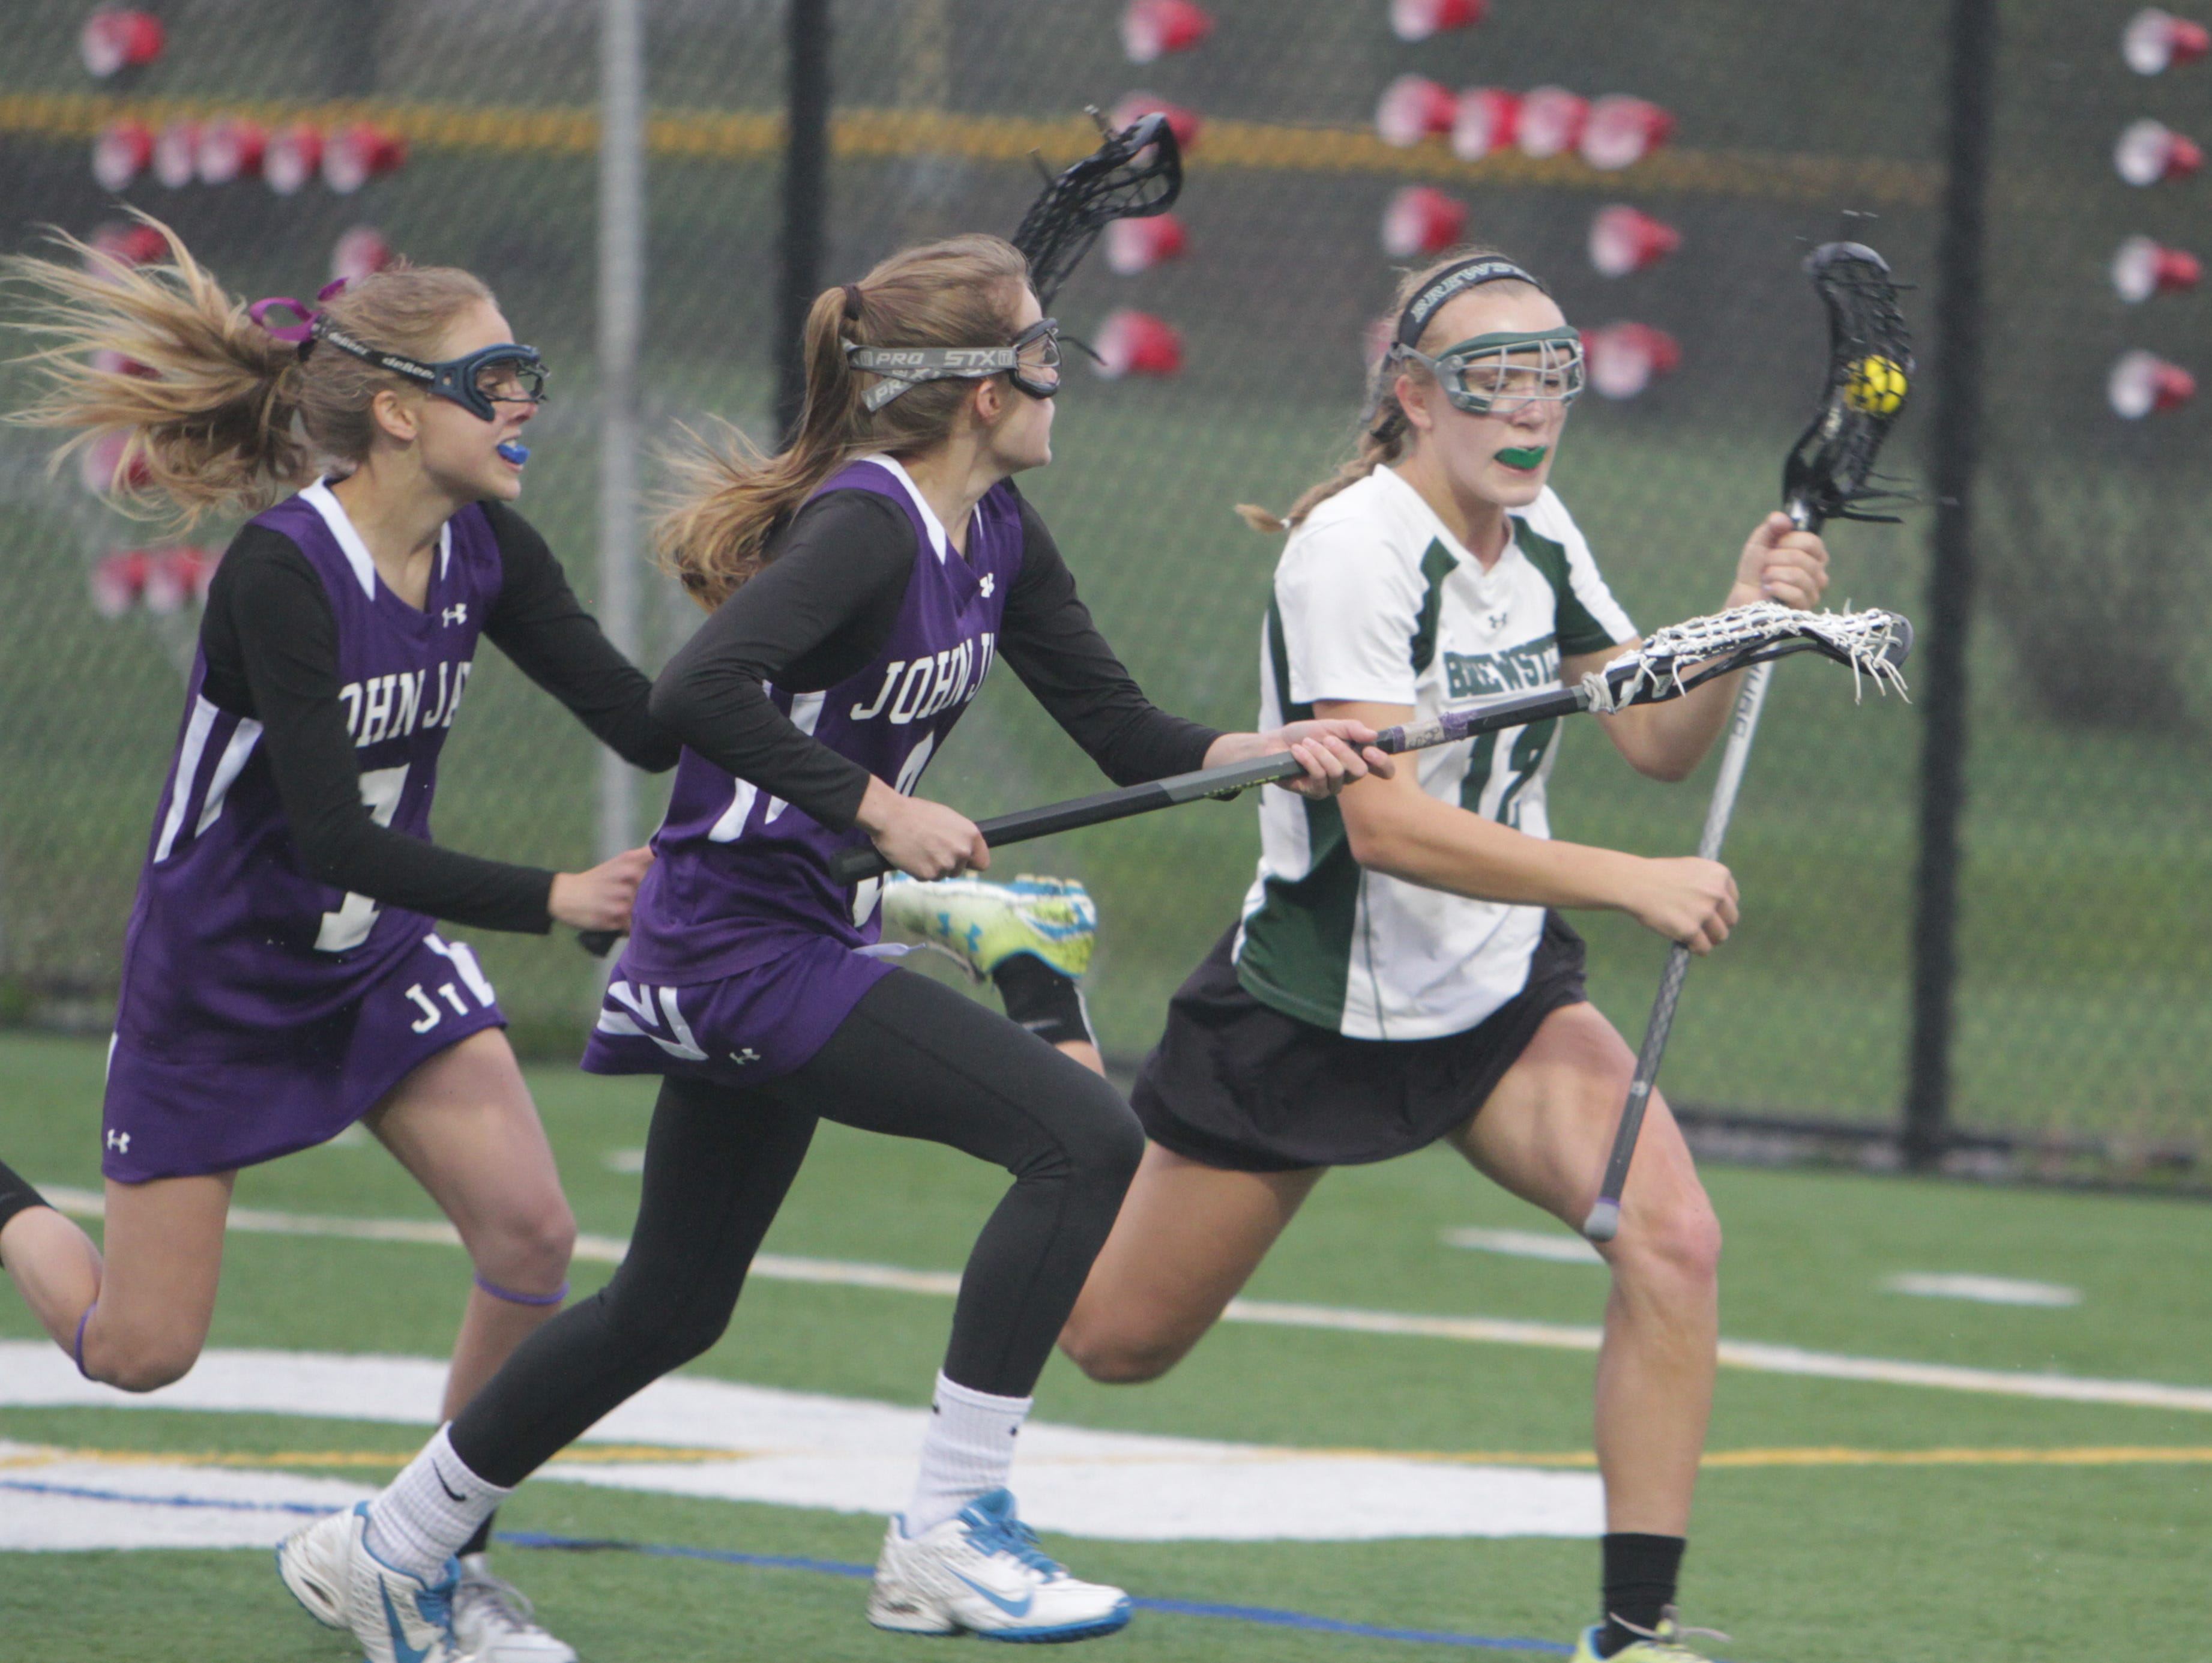 Action between Brewster and John Jay during a girls lacrosse game at Brewster on Friday, May 6th, 2016. John Jay won 9-6.